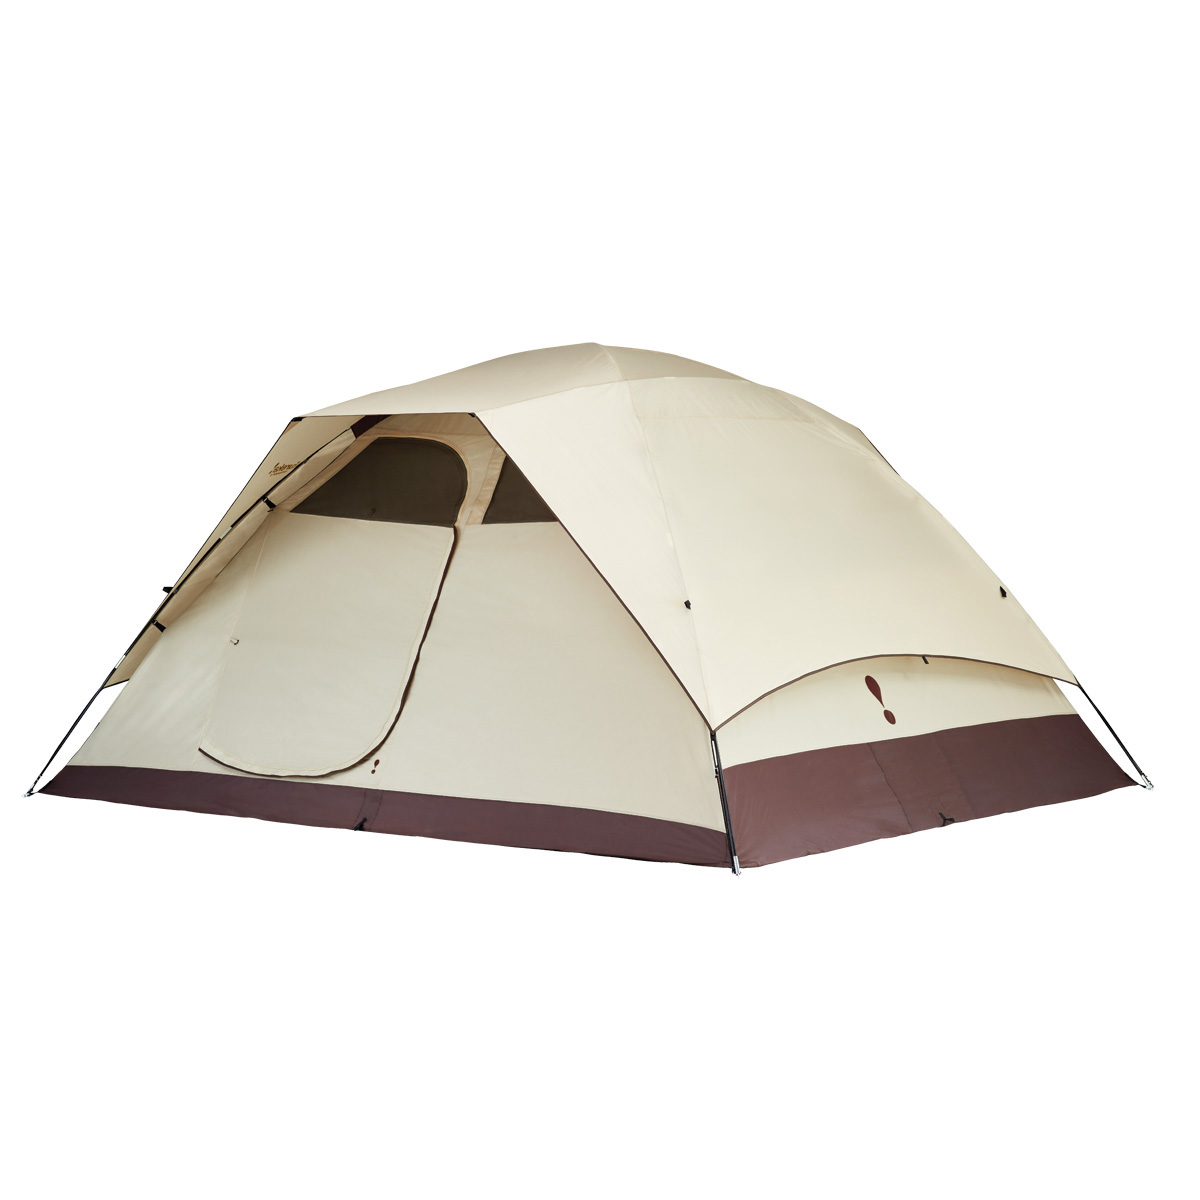 Tetragon Hd 8 Person Tent